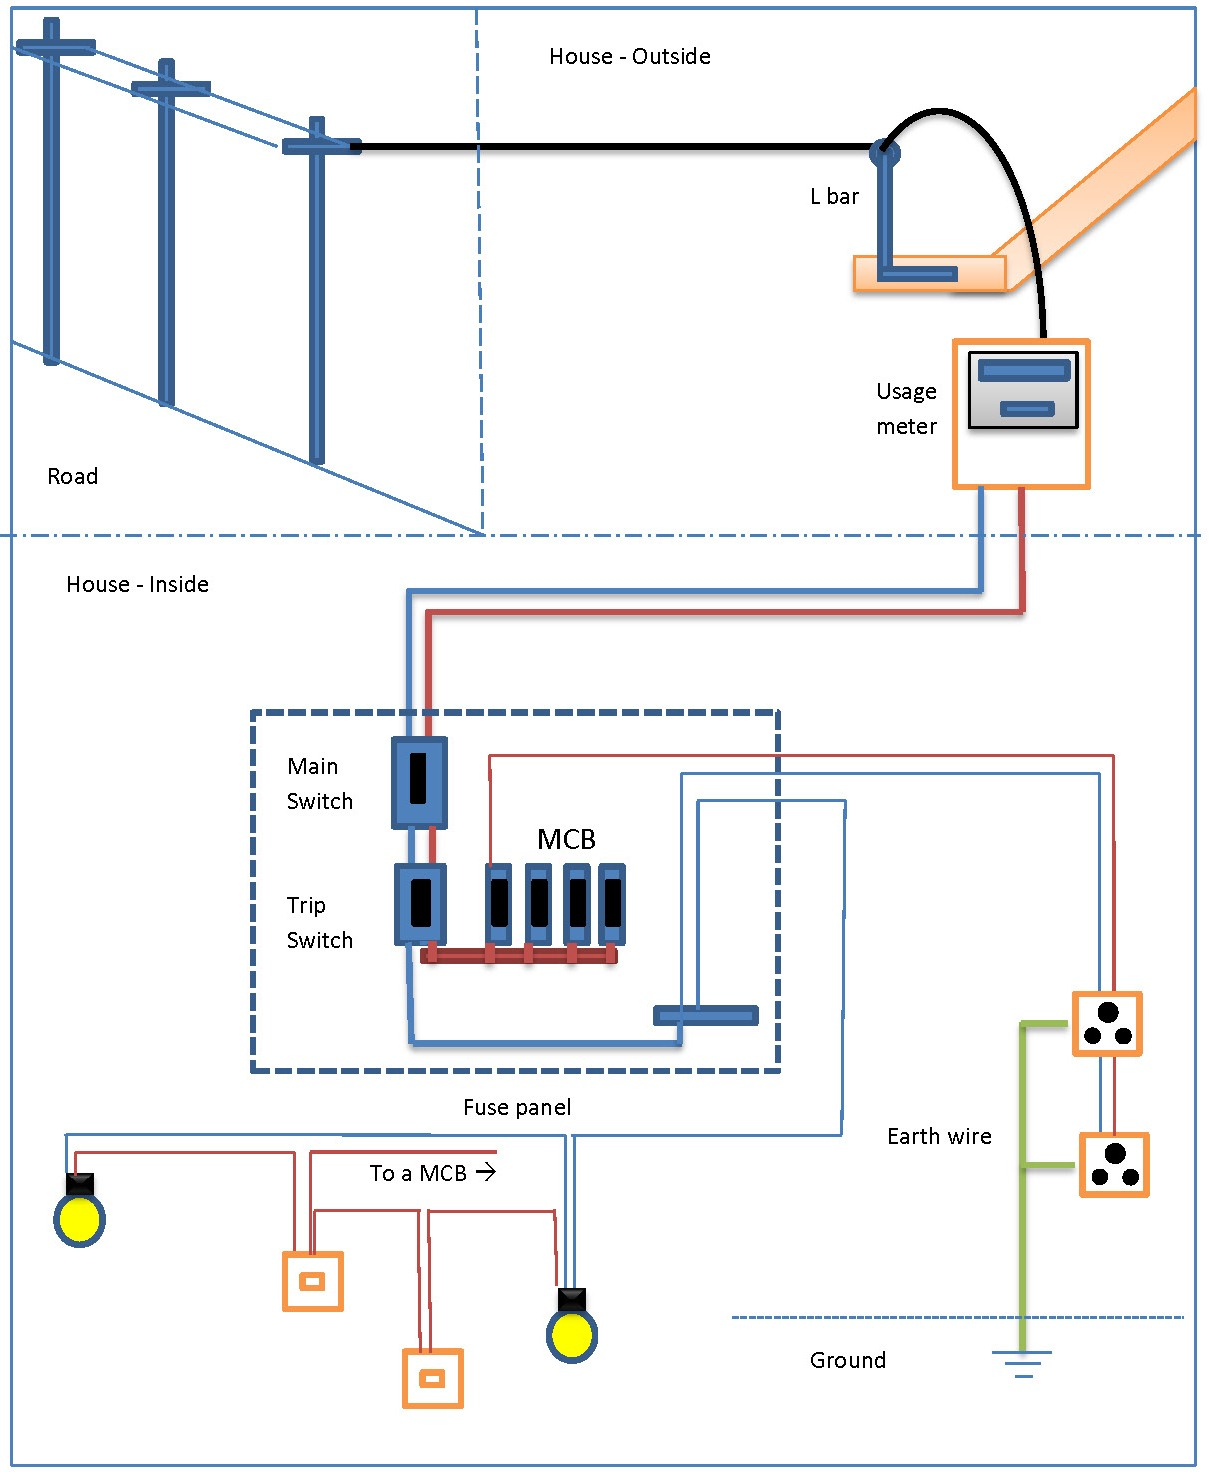 Doc3 senasum's blog house wiring diagram sri lanka wiring diagram of a house at reclaimingppi.co